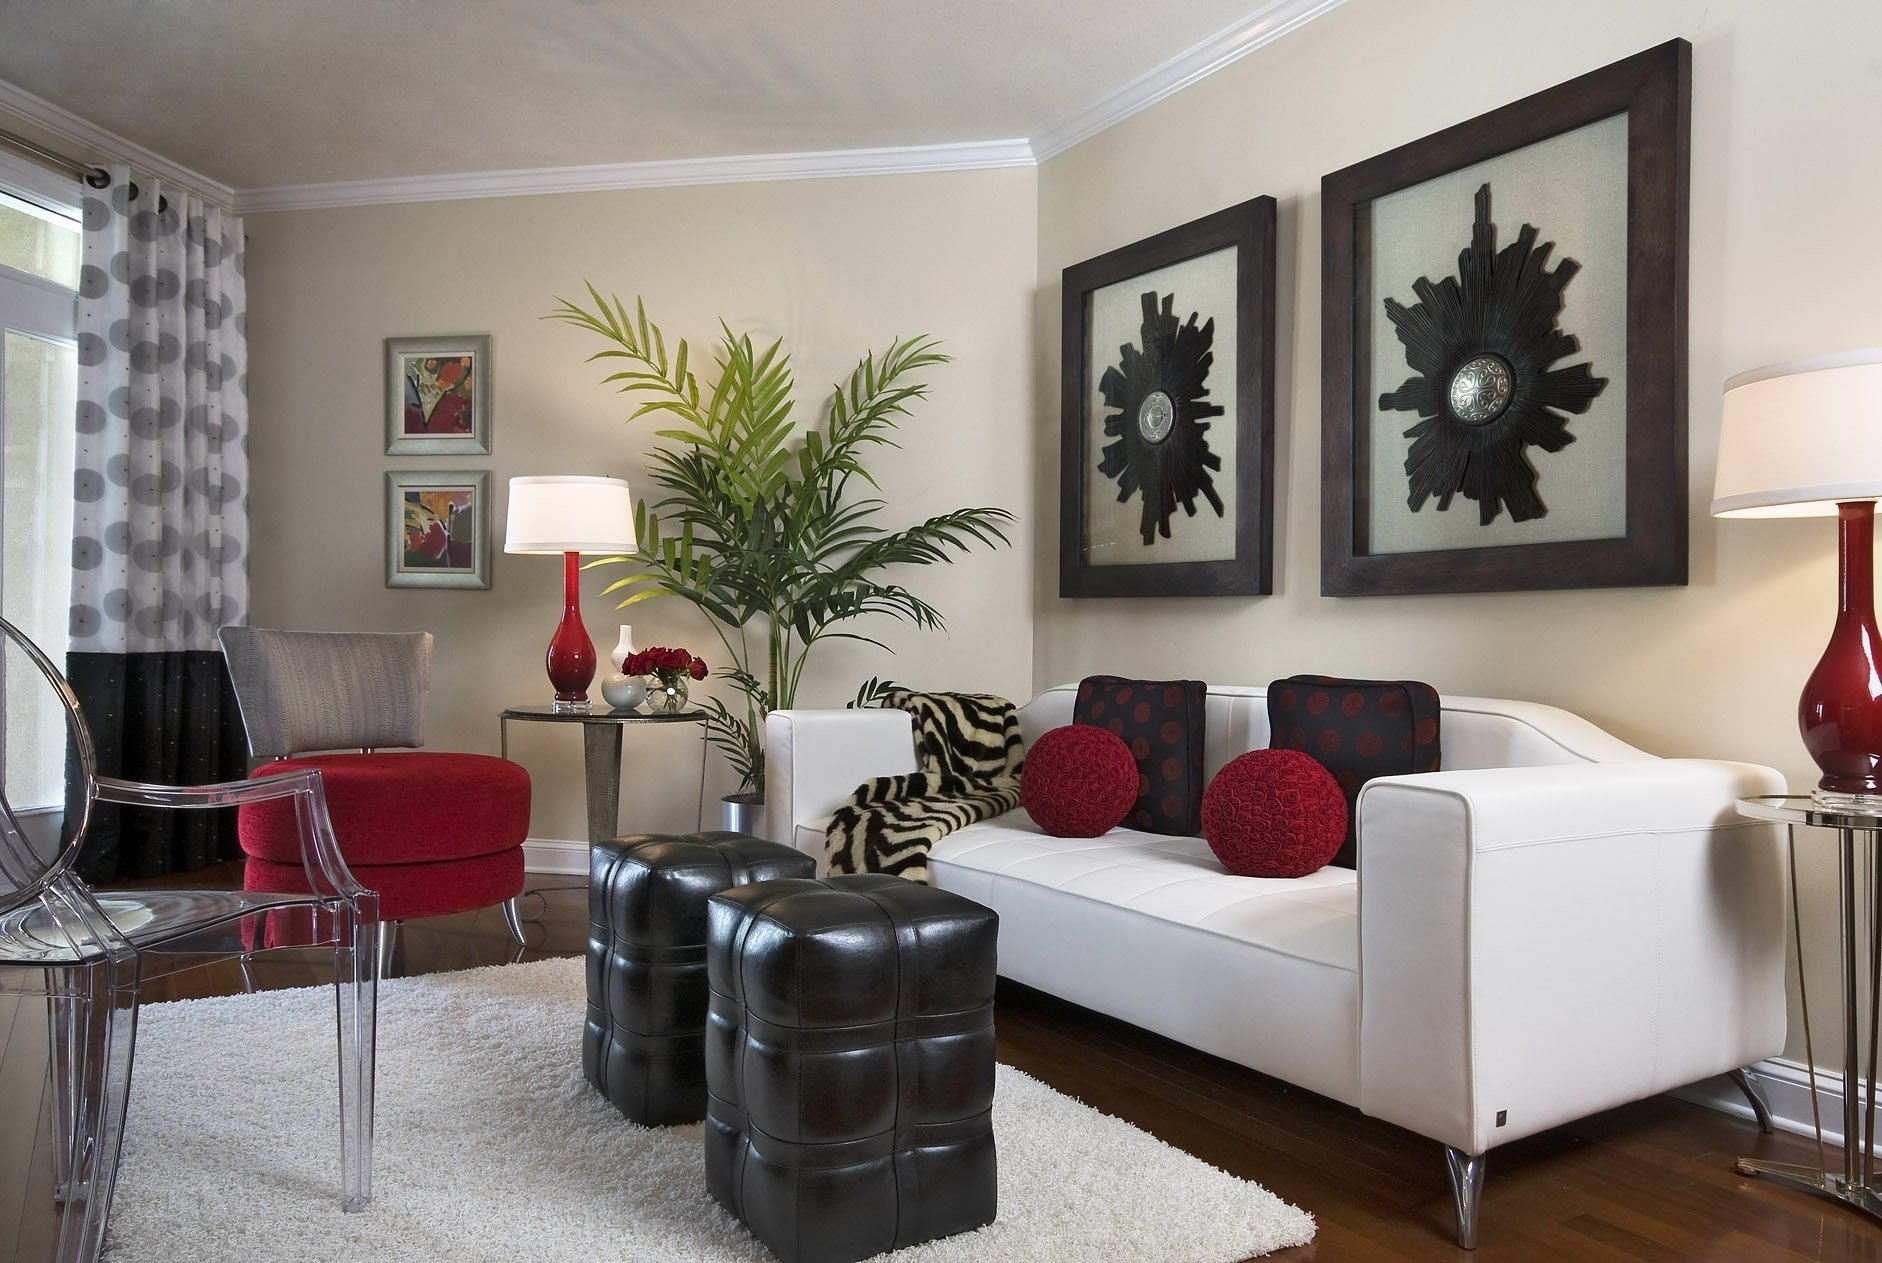 10 Fabulous Decorating Ideas For A Small Living Room decorating ideas for a small living room home design ideas 2021